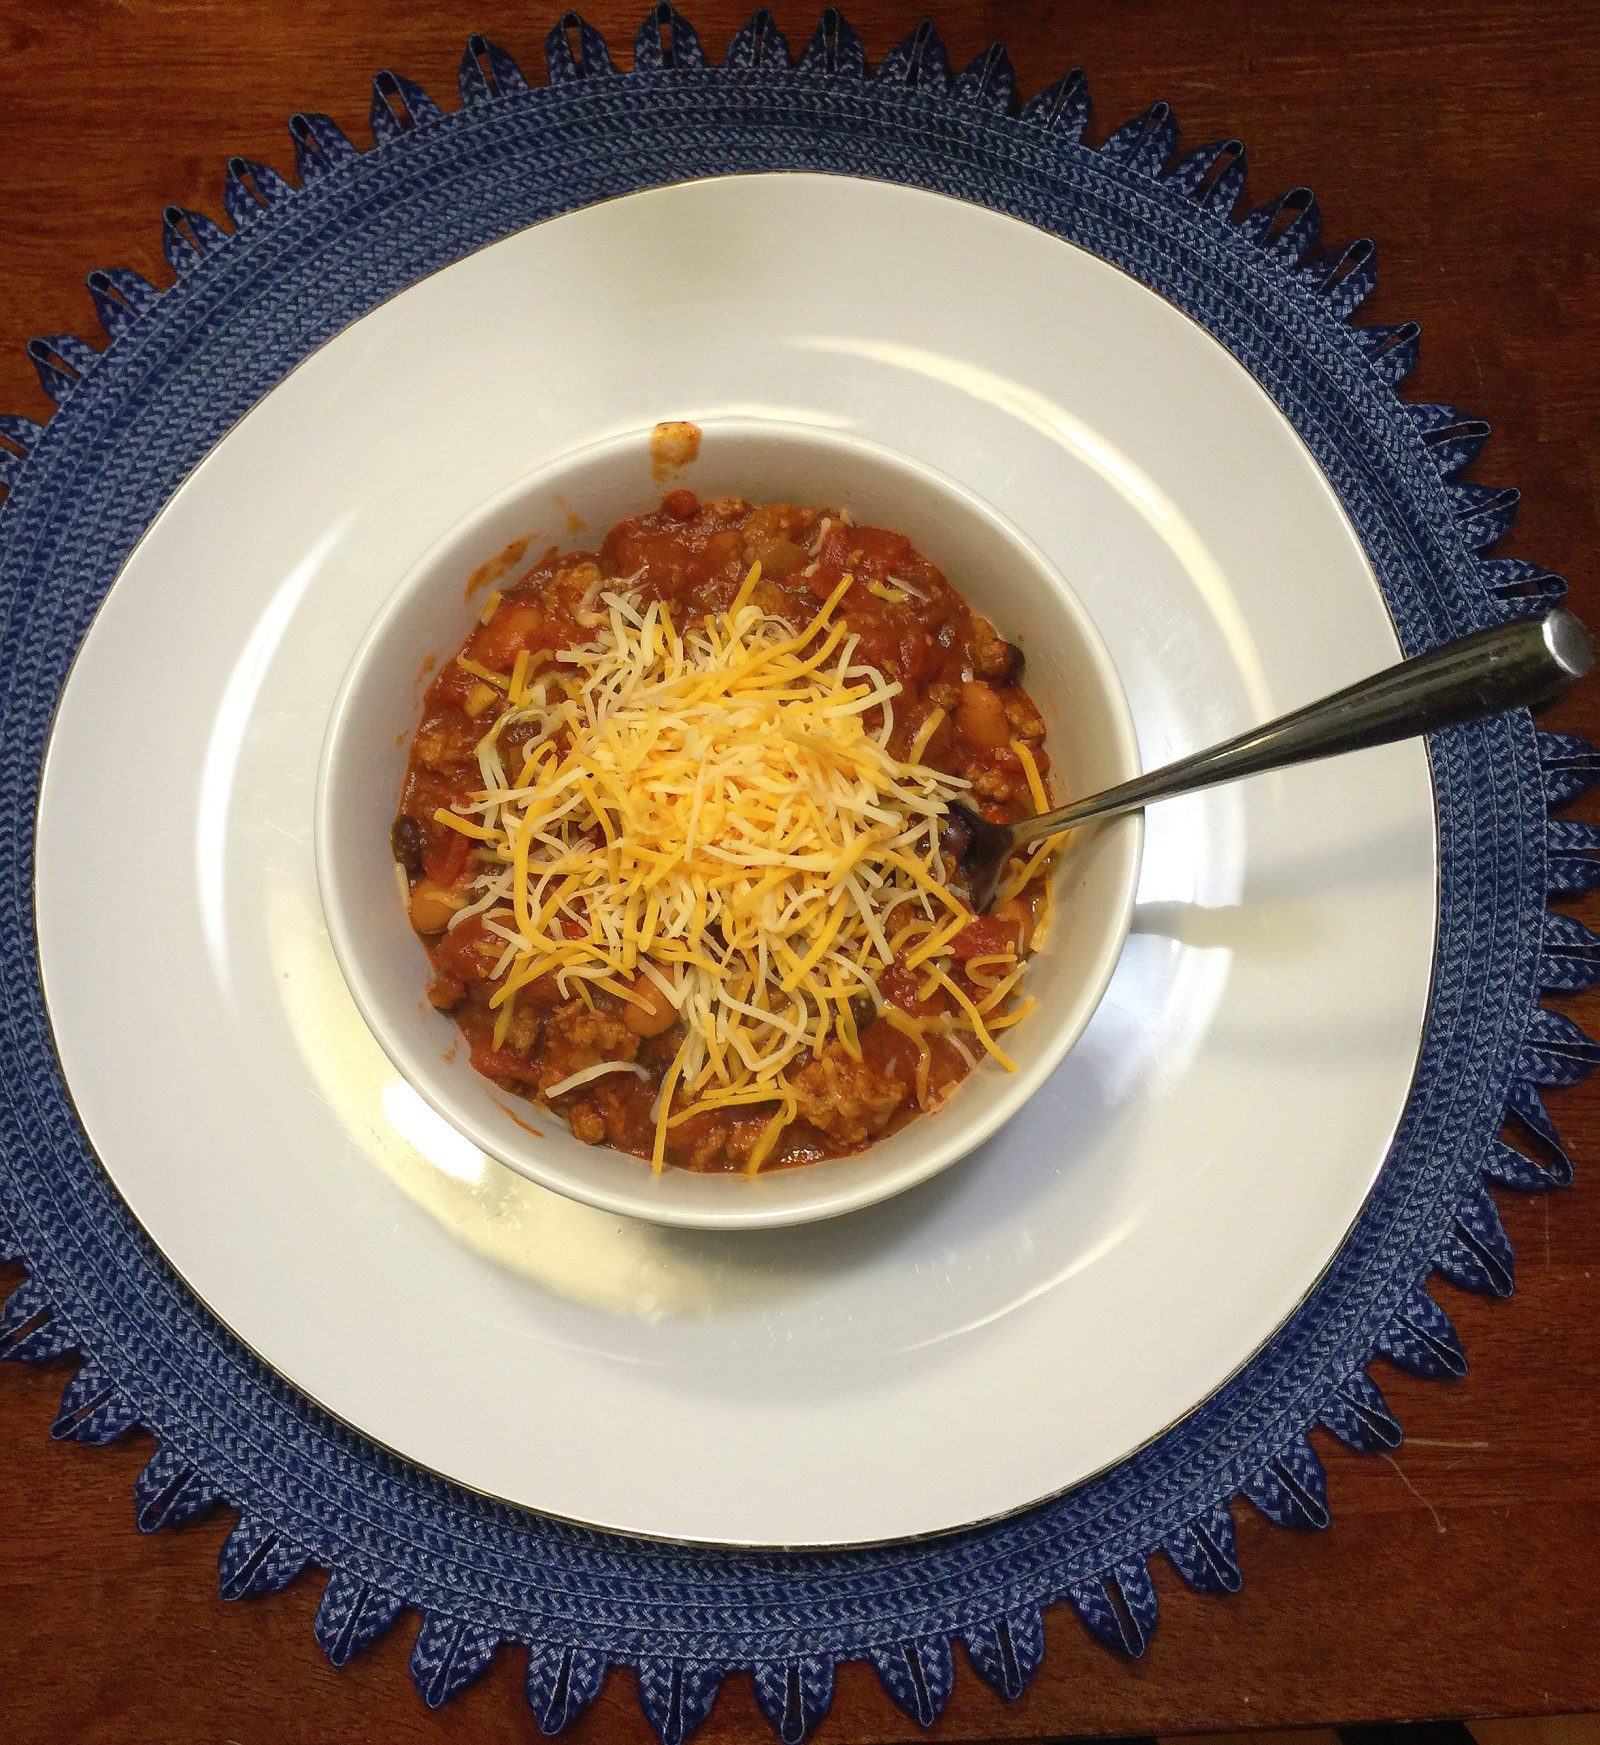 Crock-Pot Chili Time!